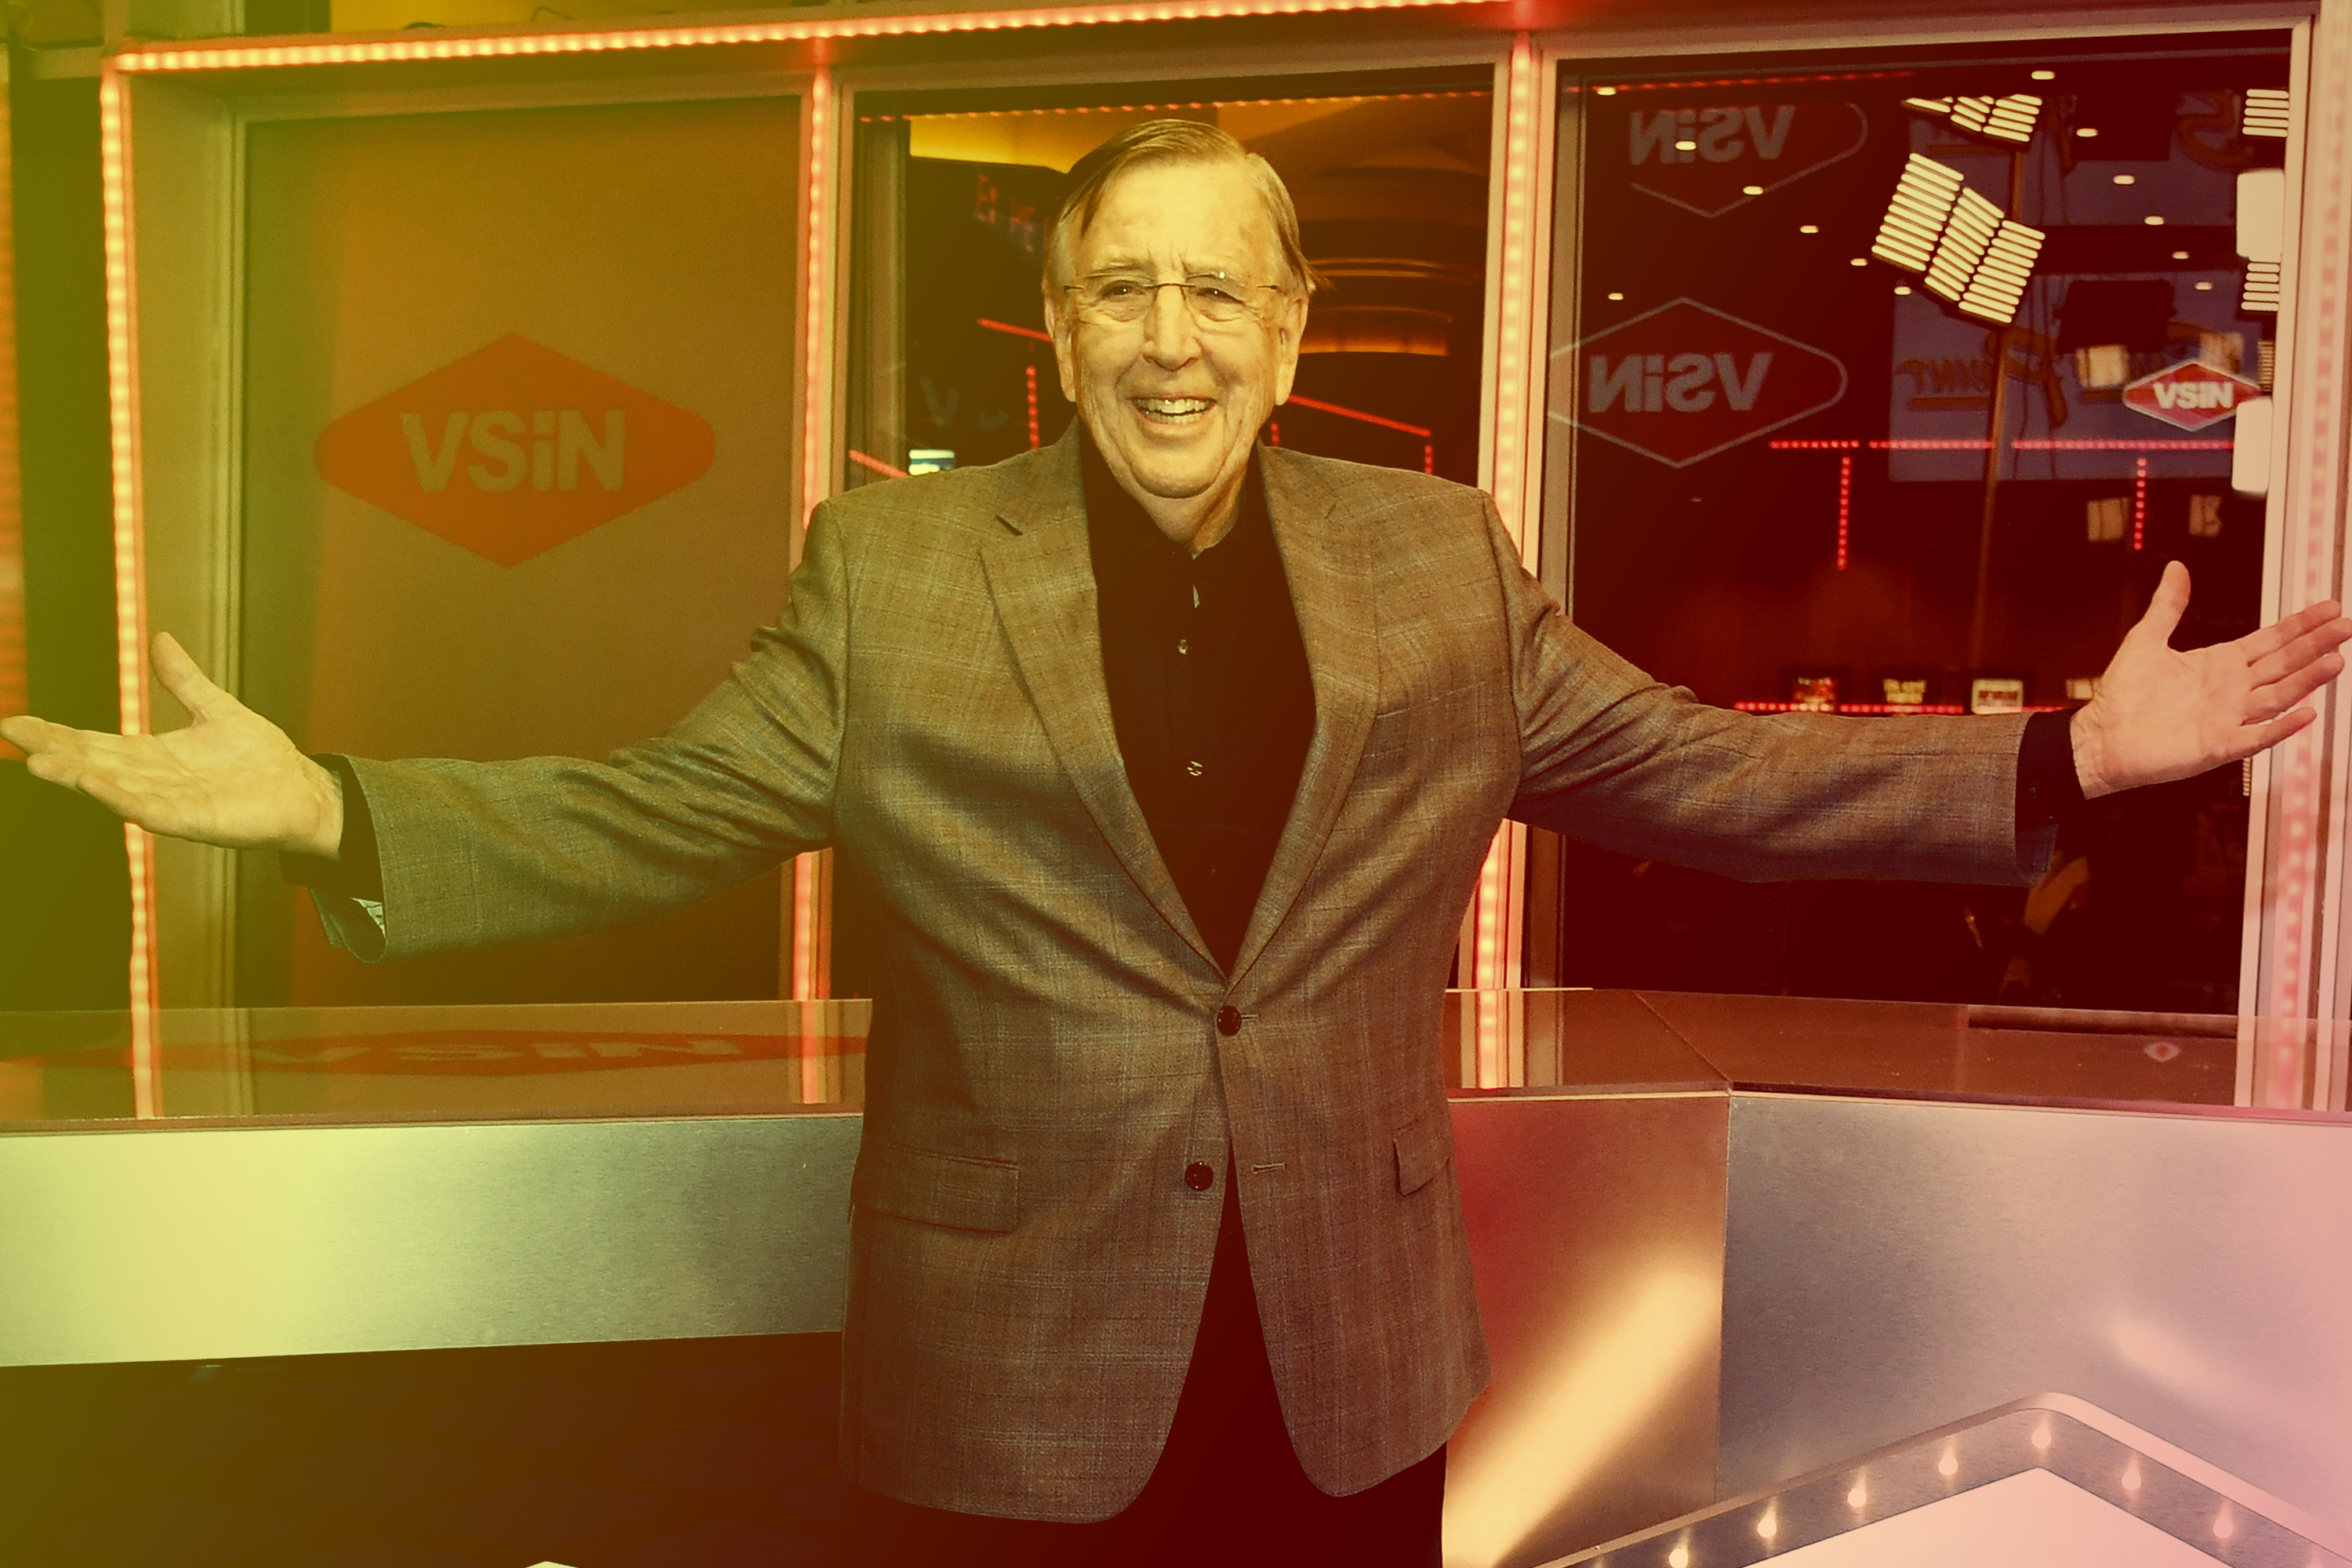 Brent musburger bets on games delaware park sports betting address stamp